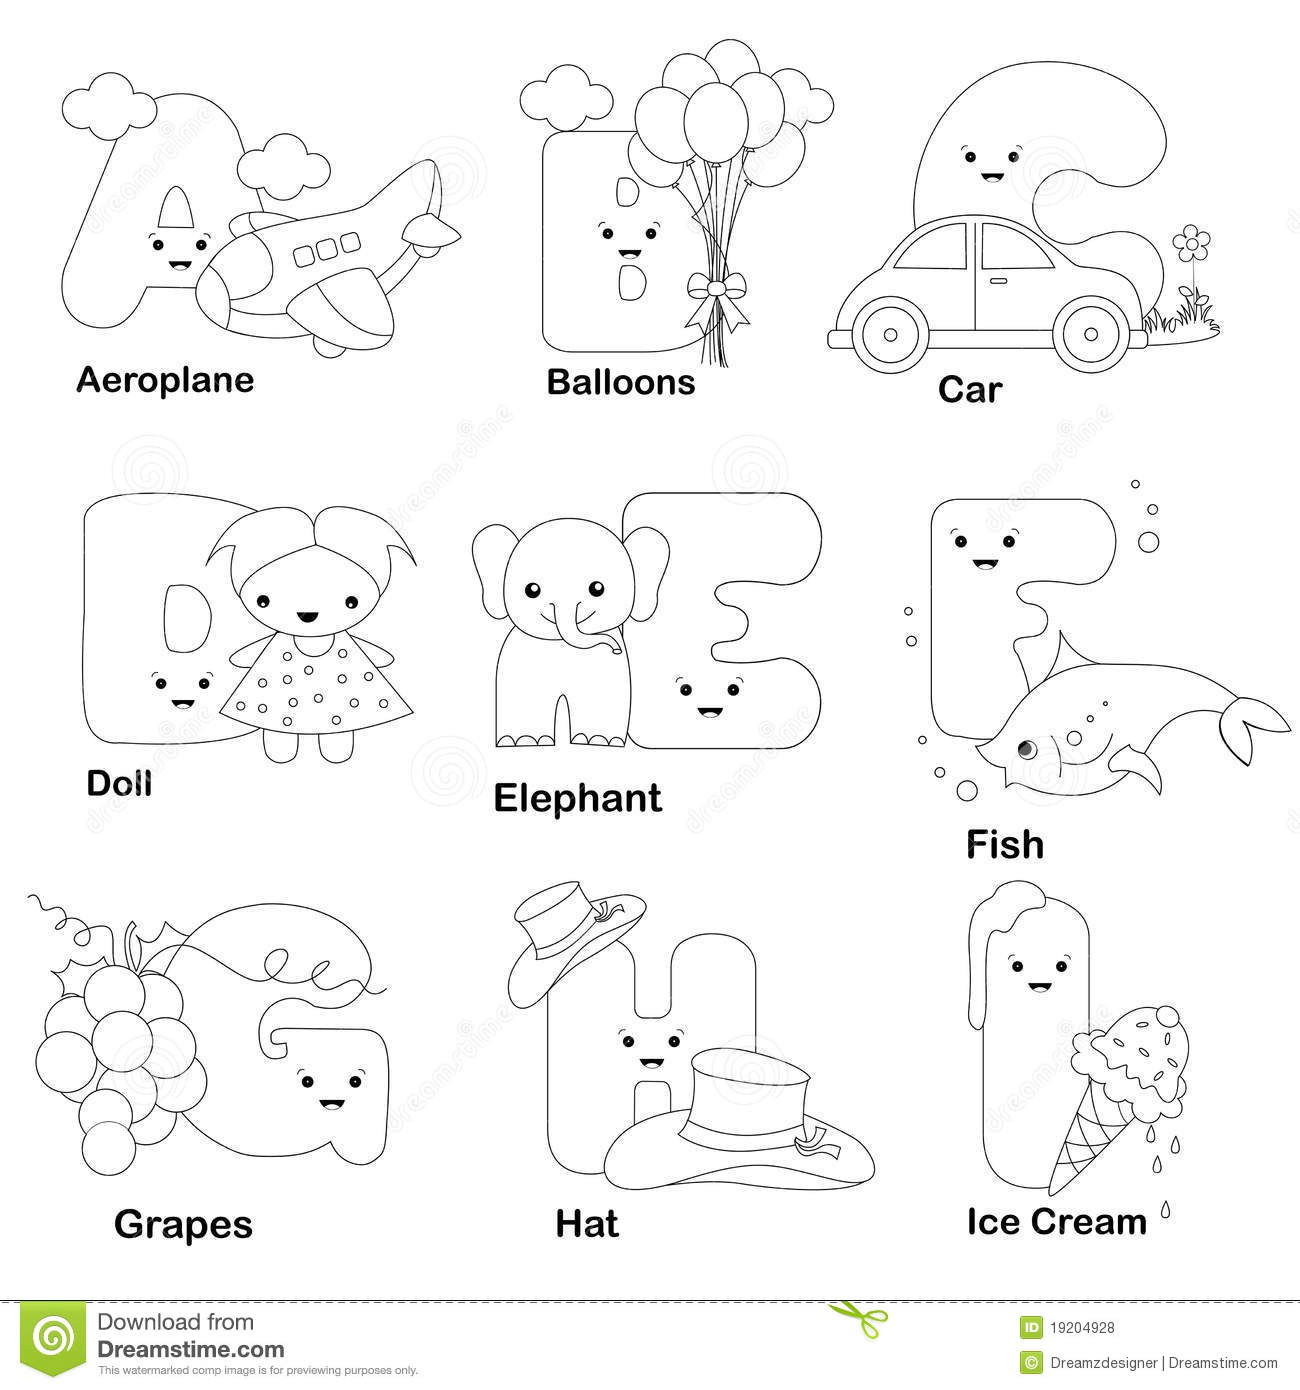 Alphabet Coloring Page Stock Vector. Illustration Of Child with Alphabet Colouring Worksheets For Kindergarten